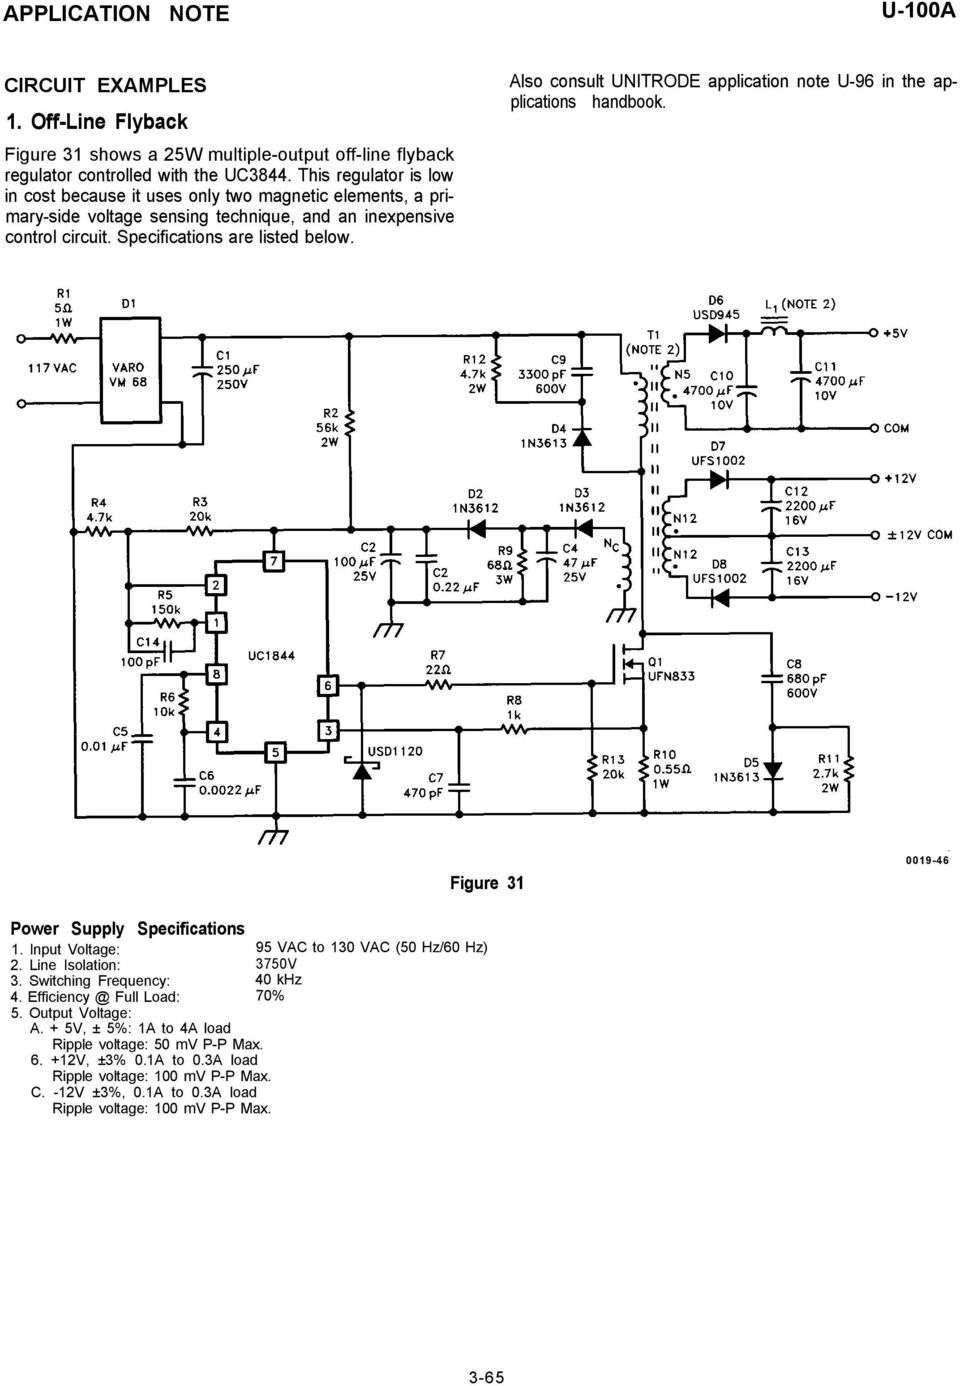 Also consult UNITRODE application note U-96 in the applications handbook. Figure 31 0019-46 Power Supply Specifications 1. Input Voltage: 95 VAC to 130 VAC (50 Hz/60 Hz) 2.